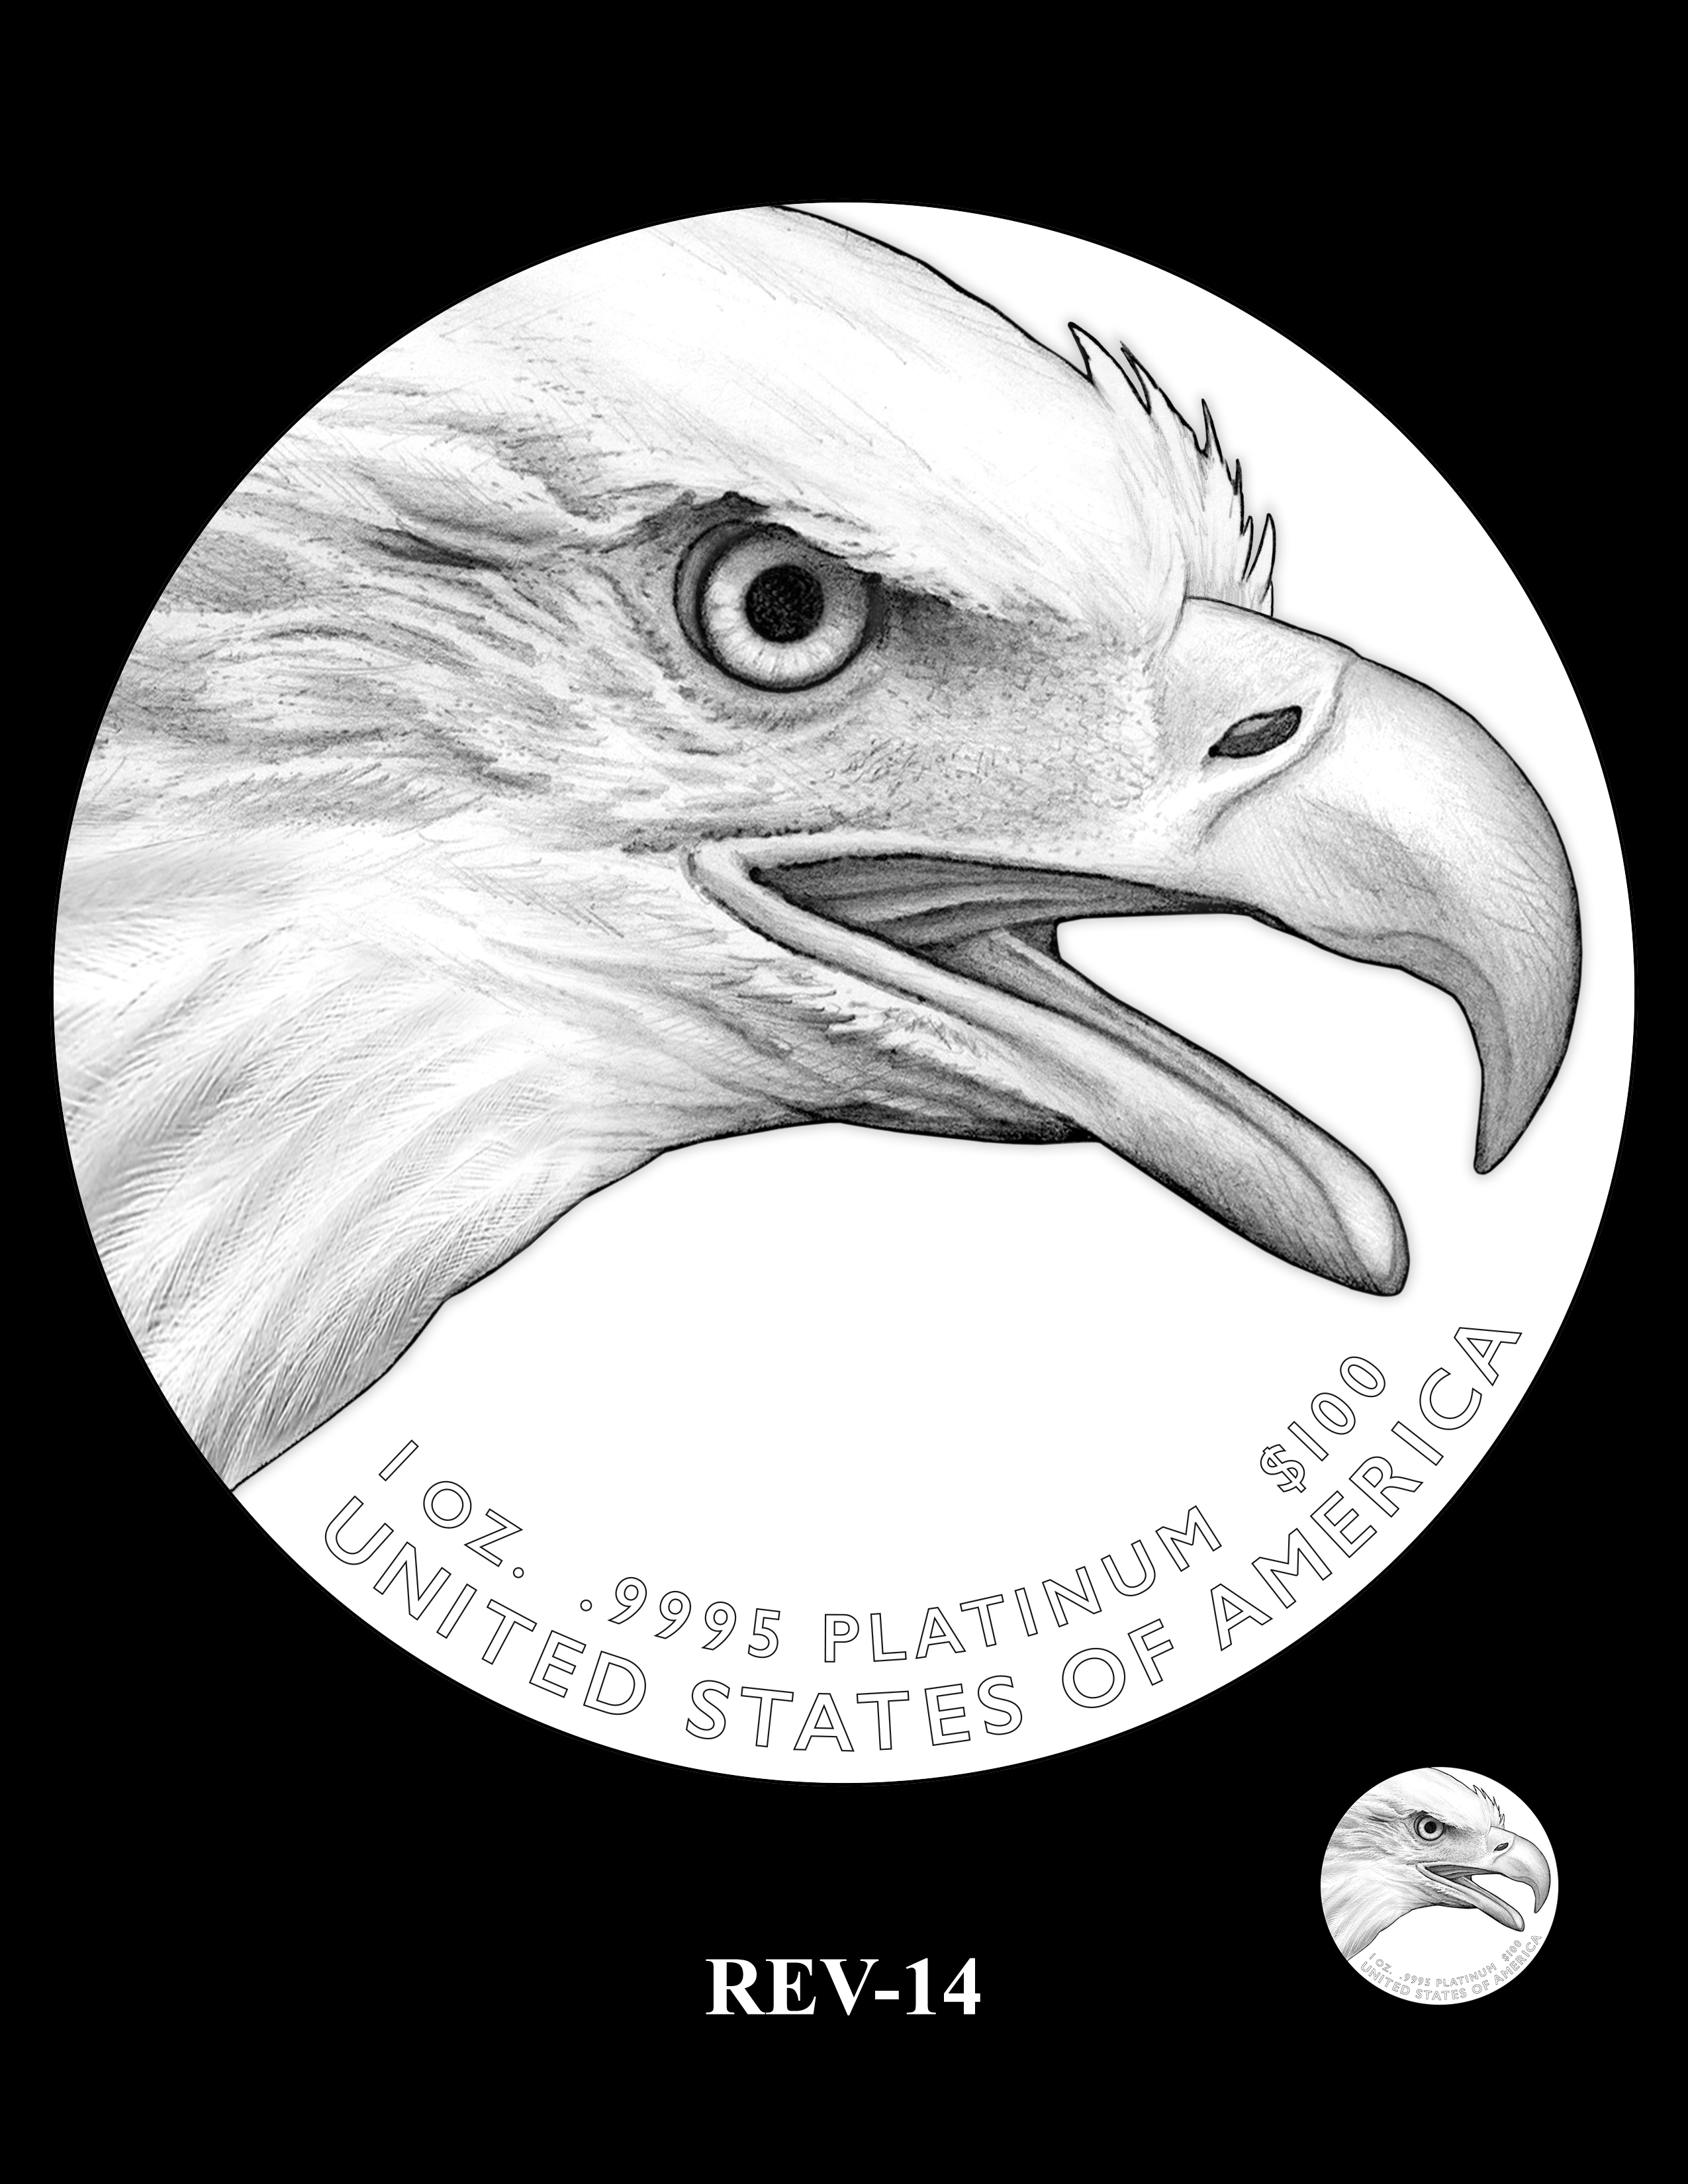 SETXX-REV-14 - 2018 2019 and 2020 American Eagle Platinum Proof Program